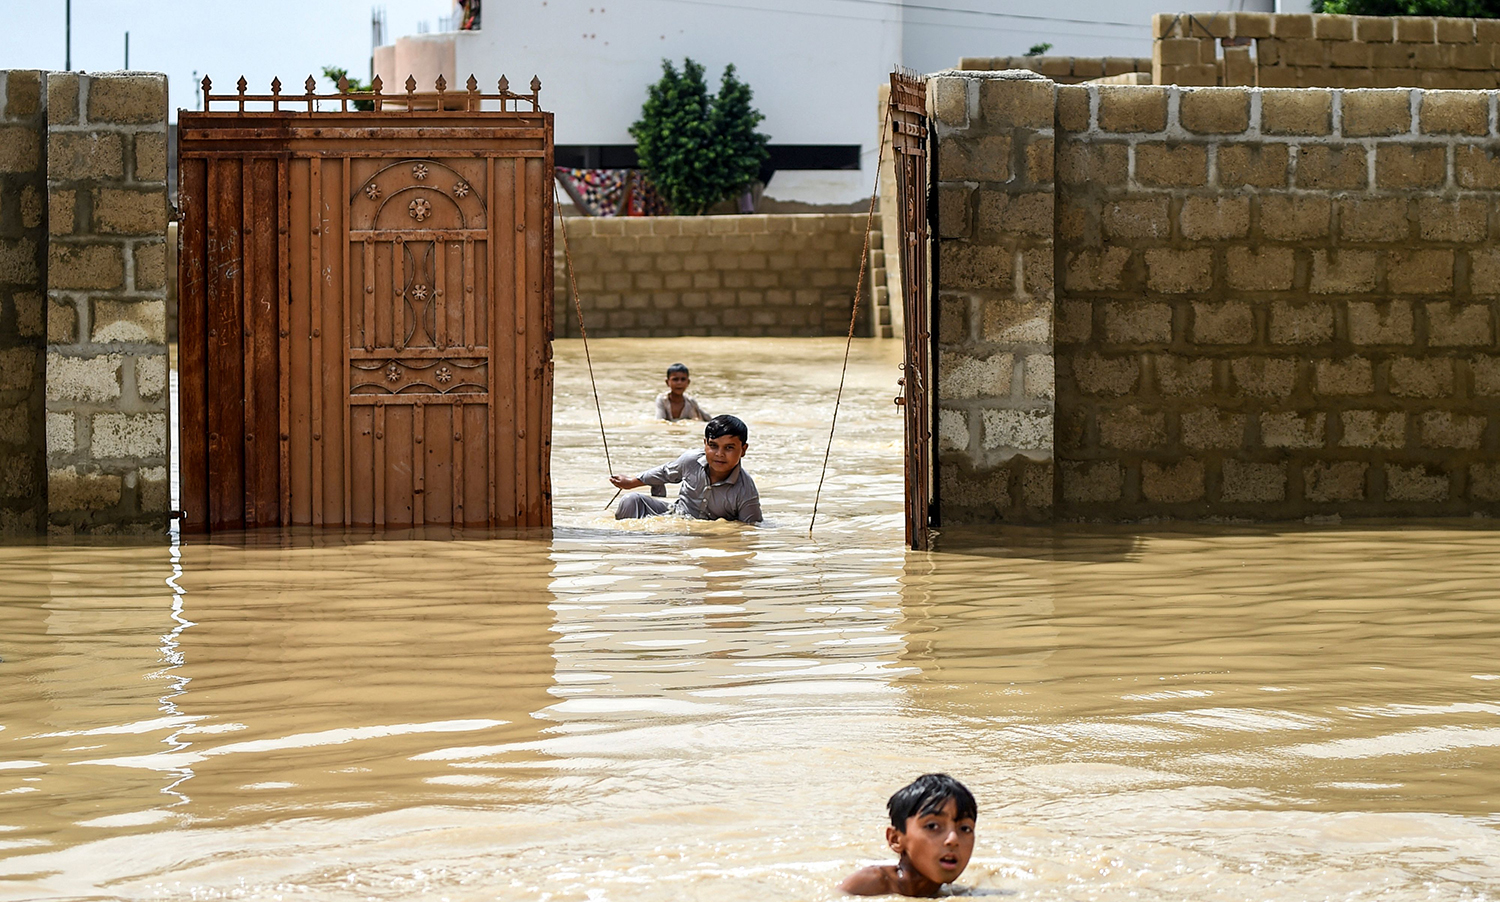 Young boys play among floodwaters during heavy monsoon rains in Karachi, Pakistan, on July 31. RIZWAN TABASSUM/AFP/Getty Images